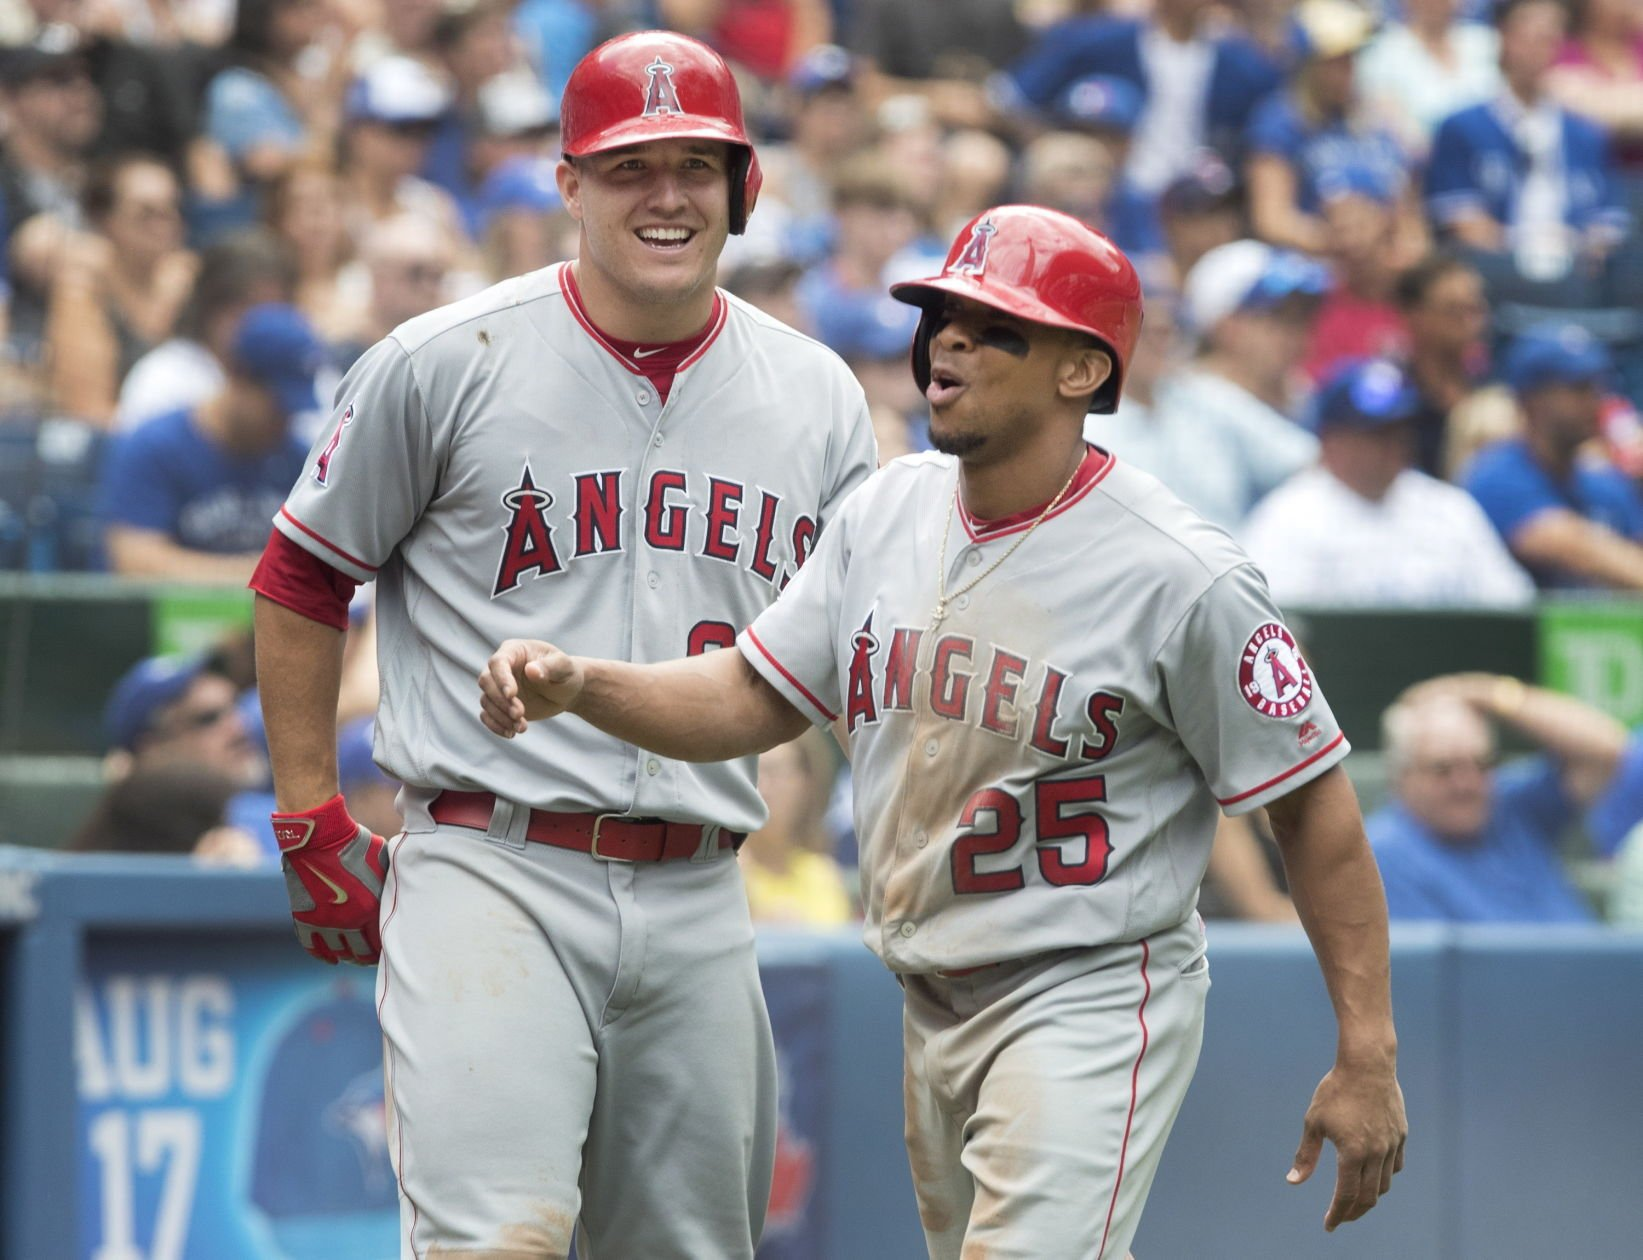 Los Angeles Angels rally in 9th to beat Toronto Blue Jays